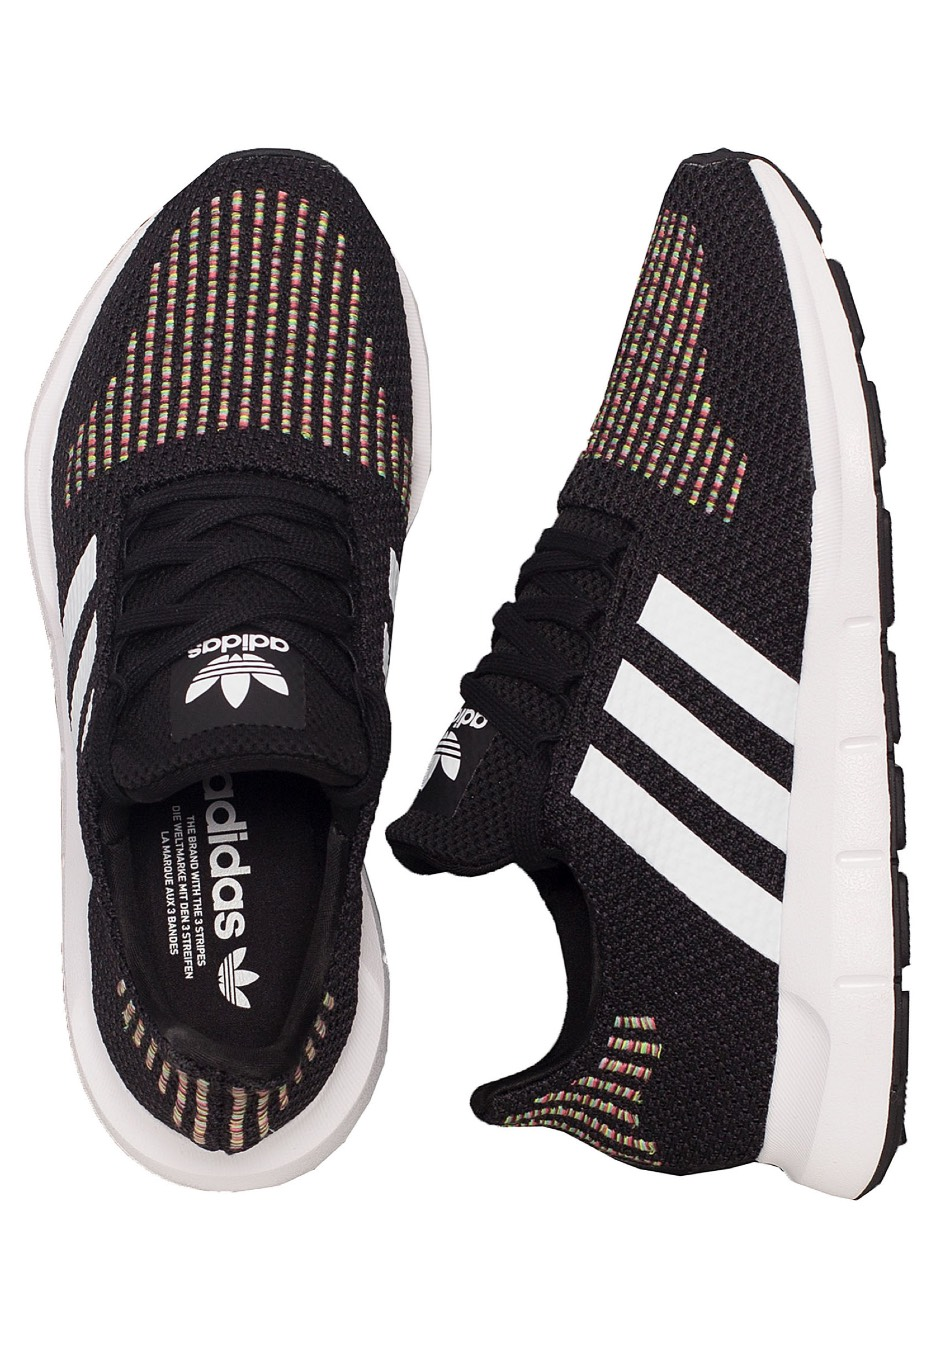 Adidas Swift Run Core BlackFtw WhiteCore Black Chaussures pour fille